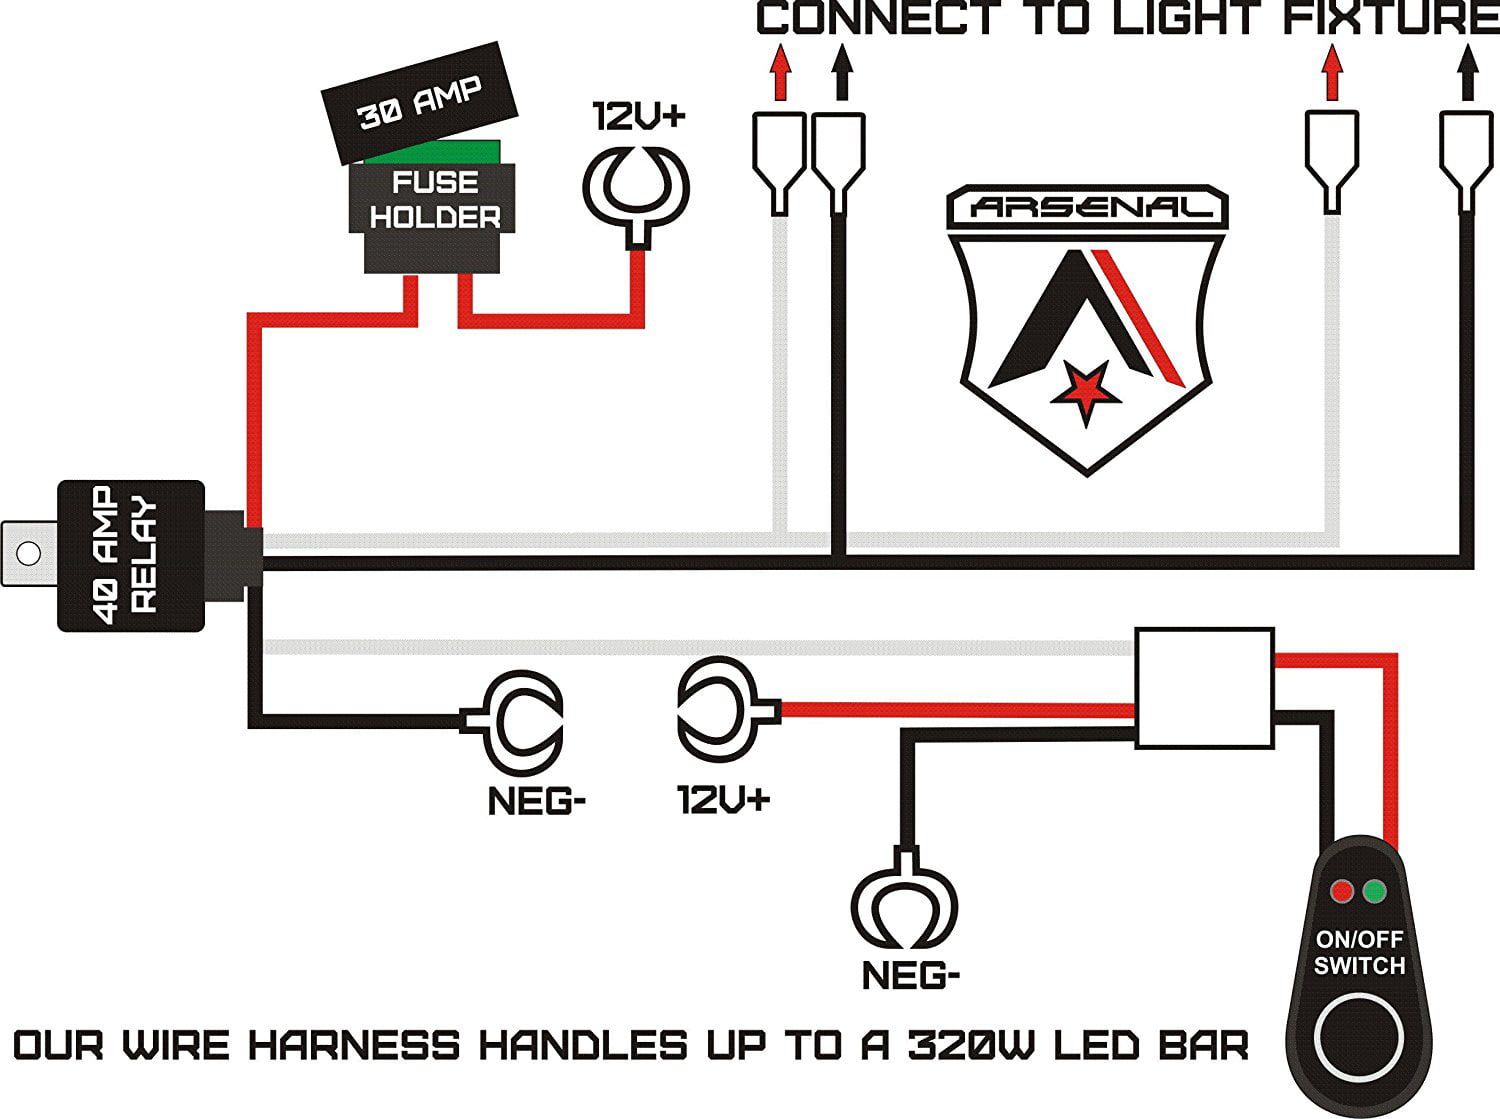 Led Light Bar Relay Wiring Diagram from i5.walmartimages.com